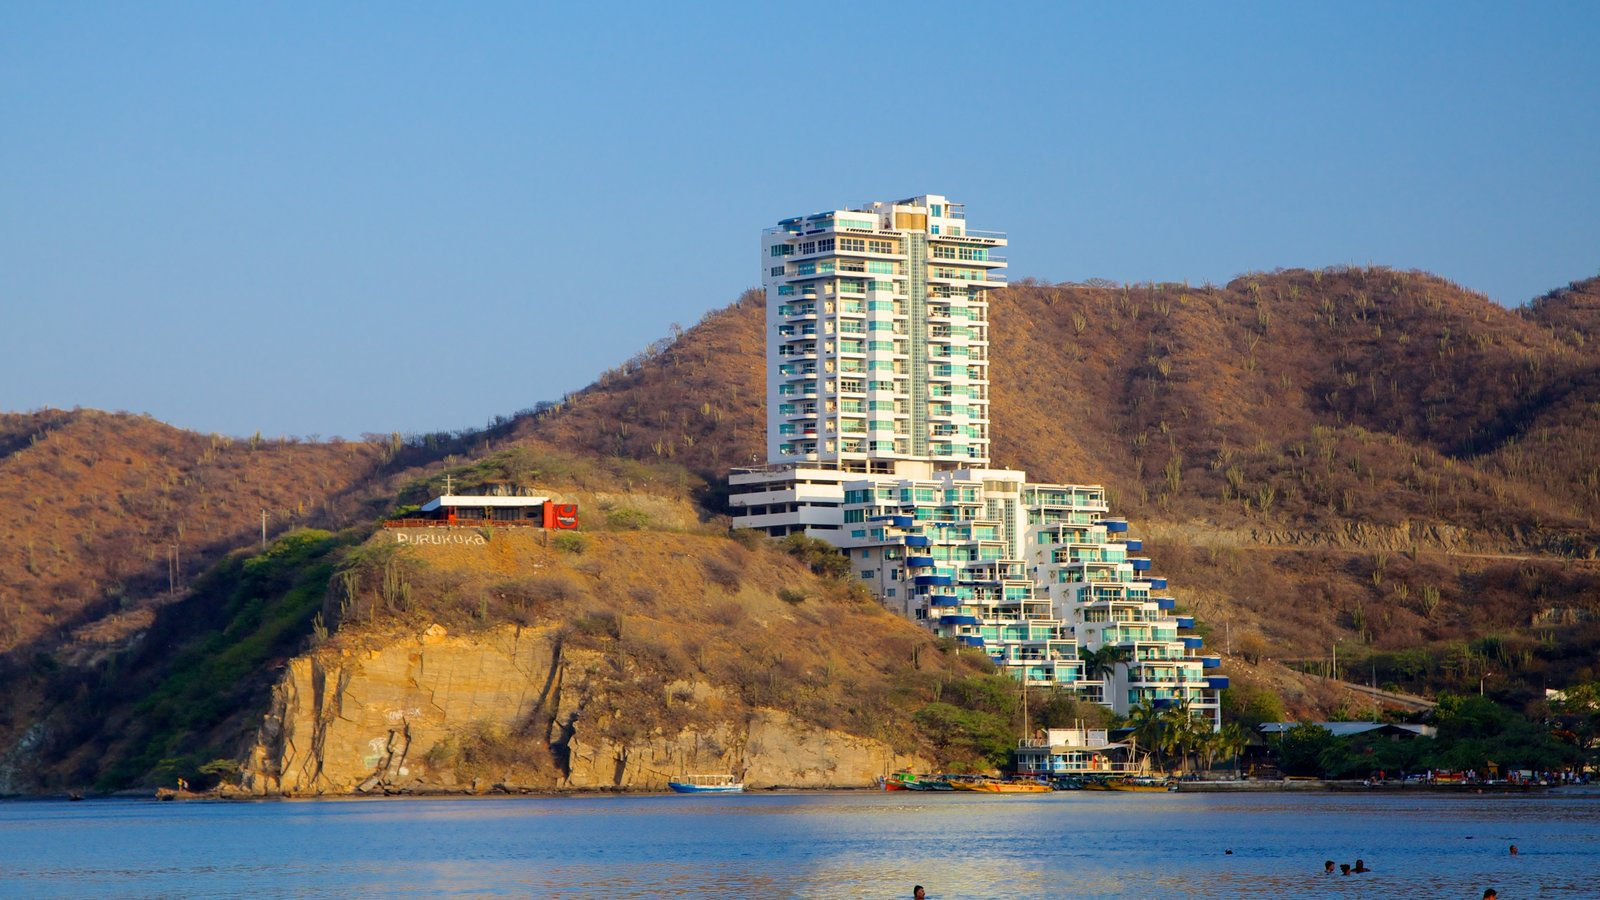 Rodadero Beach Featuring Rugged Coastline A Luxury Hotel Or Resort And General Coastal Views